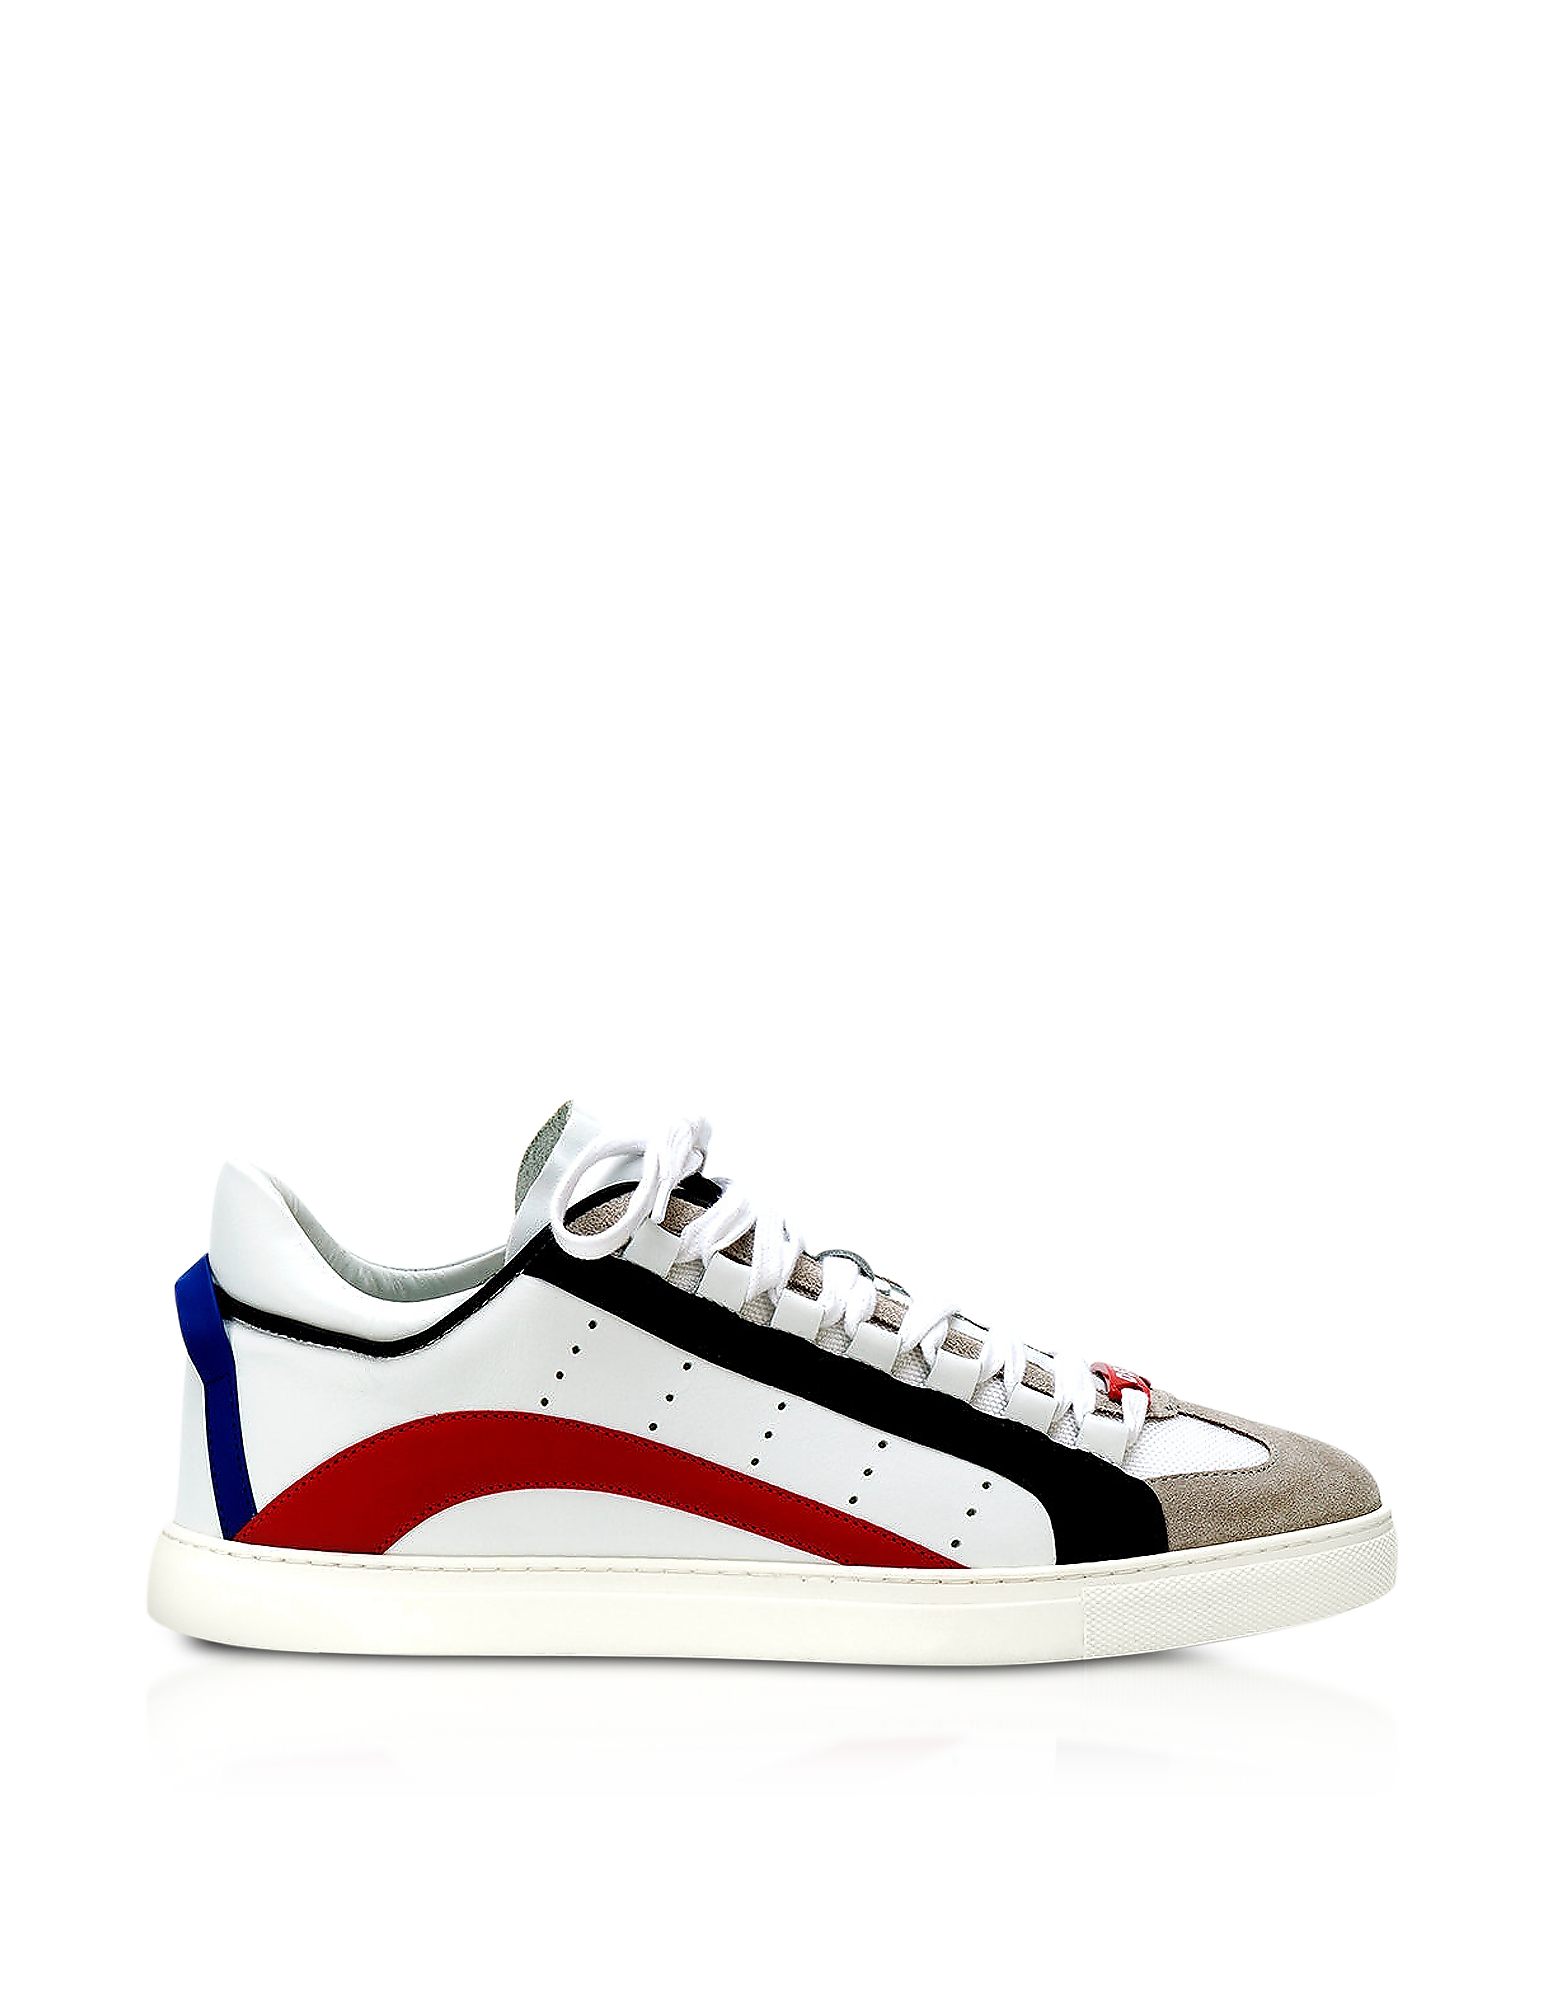 DSquared2 Shoes, White Leather Men's Low Top Sneakers